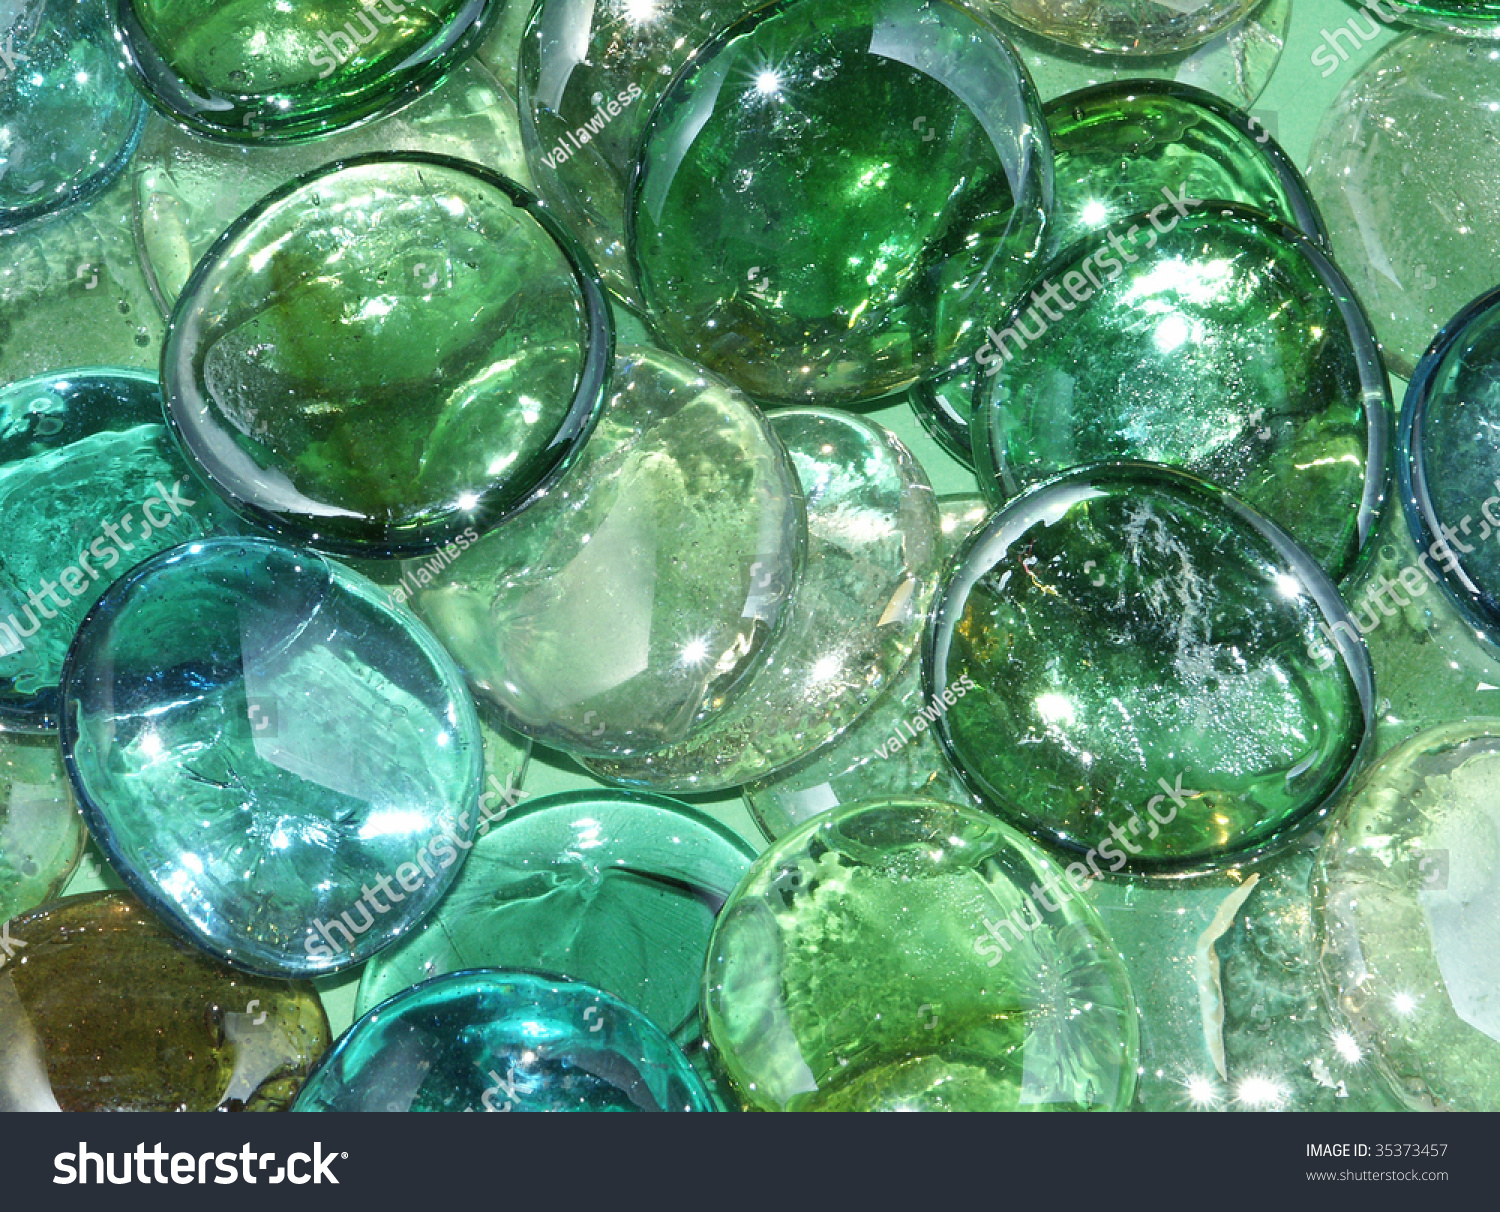 Green Glass Marble : Green glass marbles stock photo shutterstock